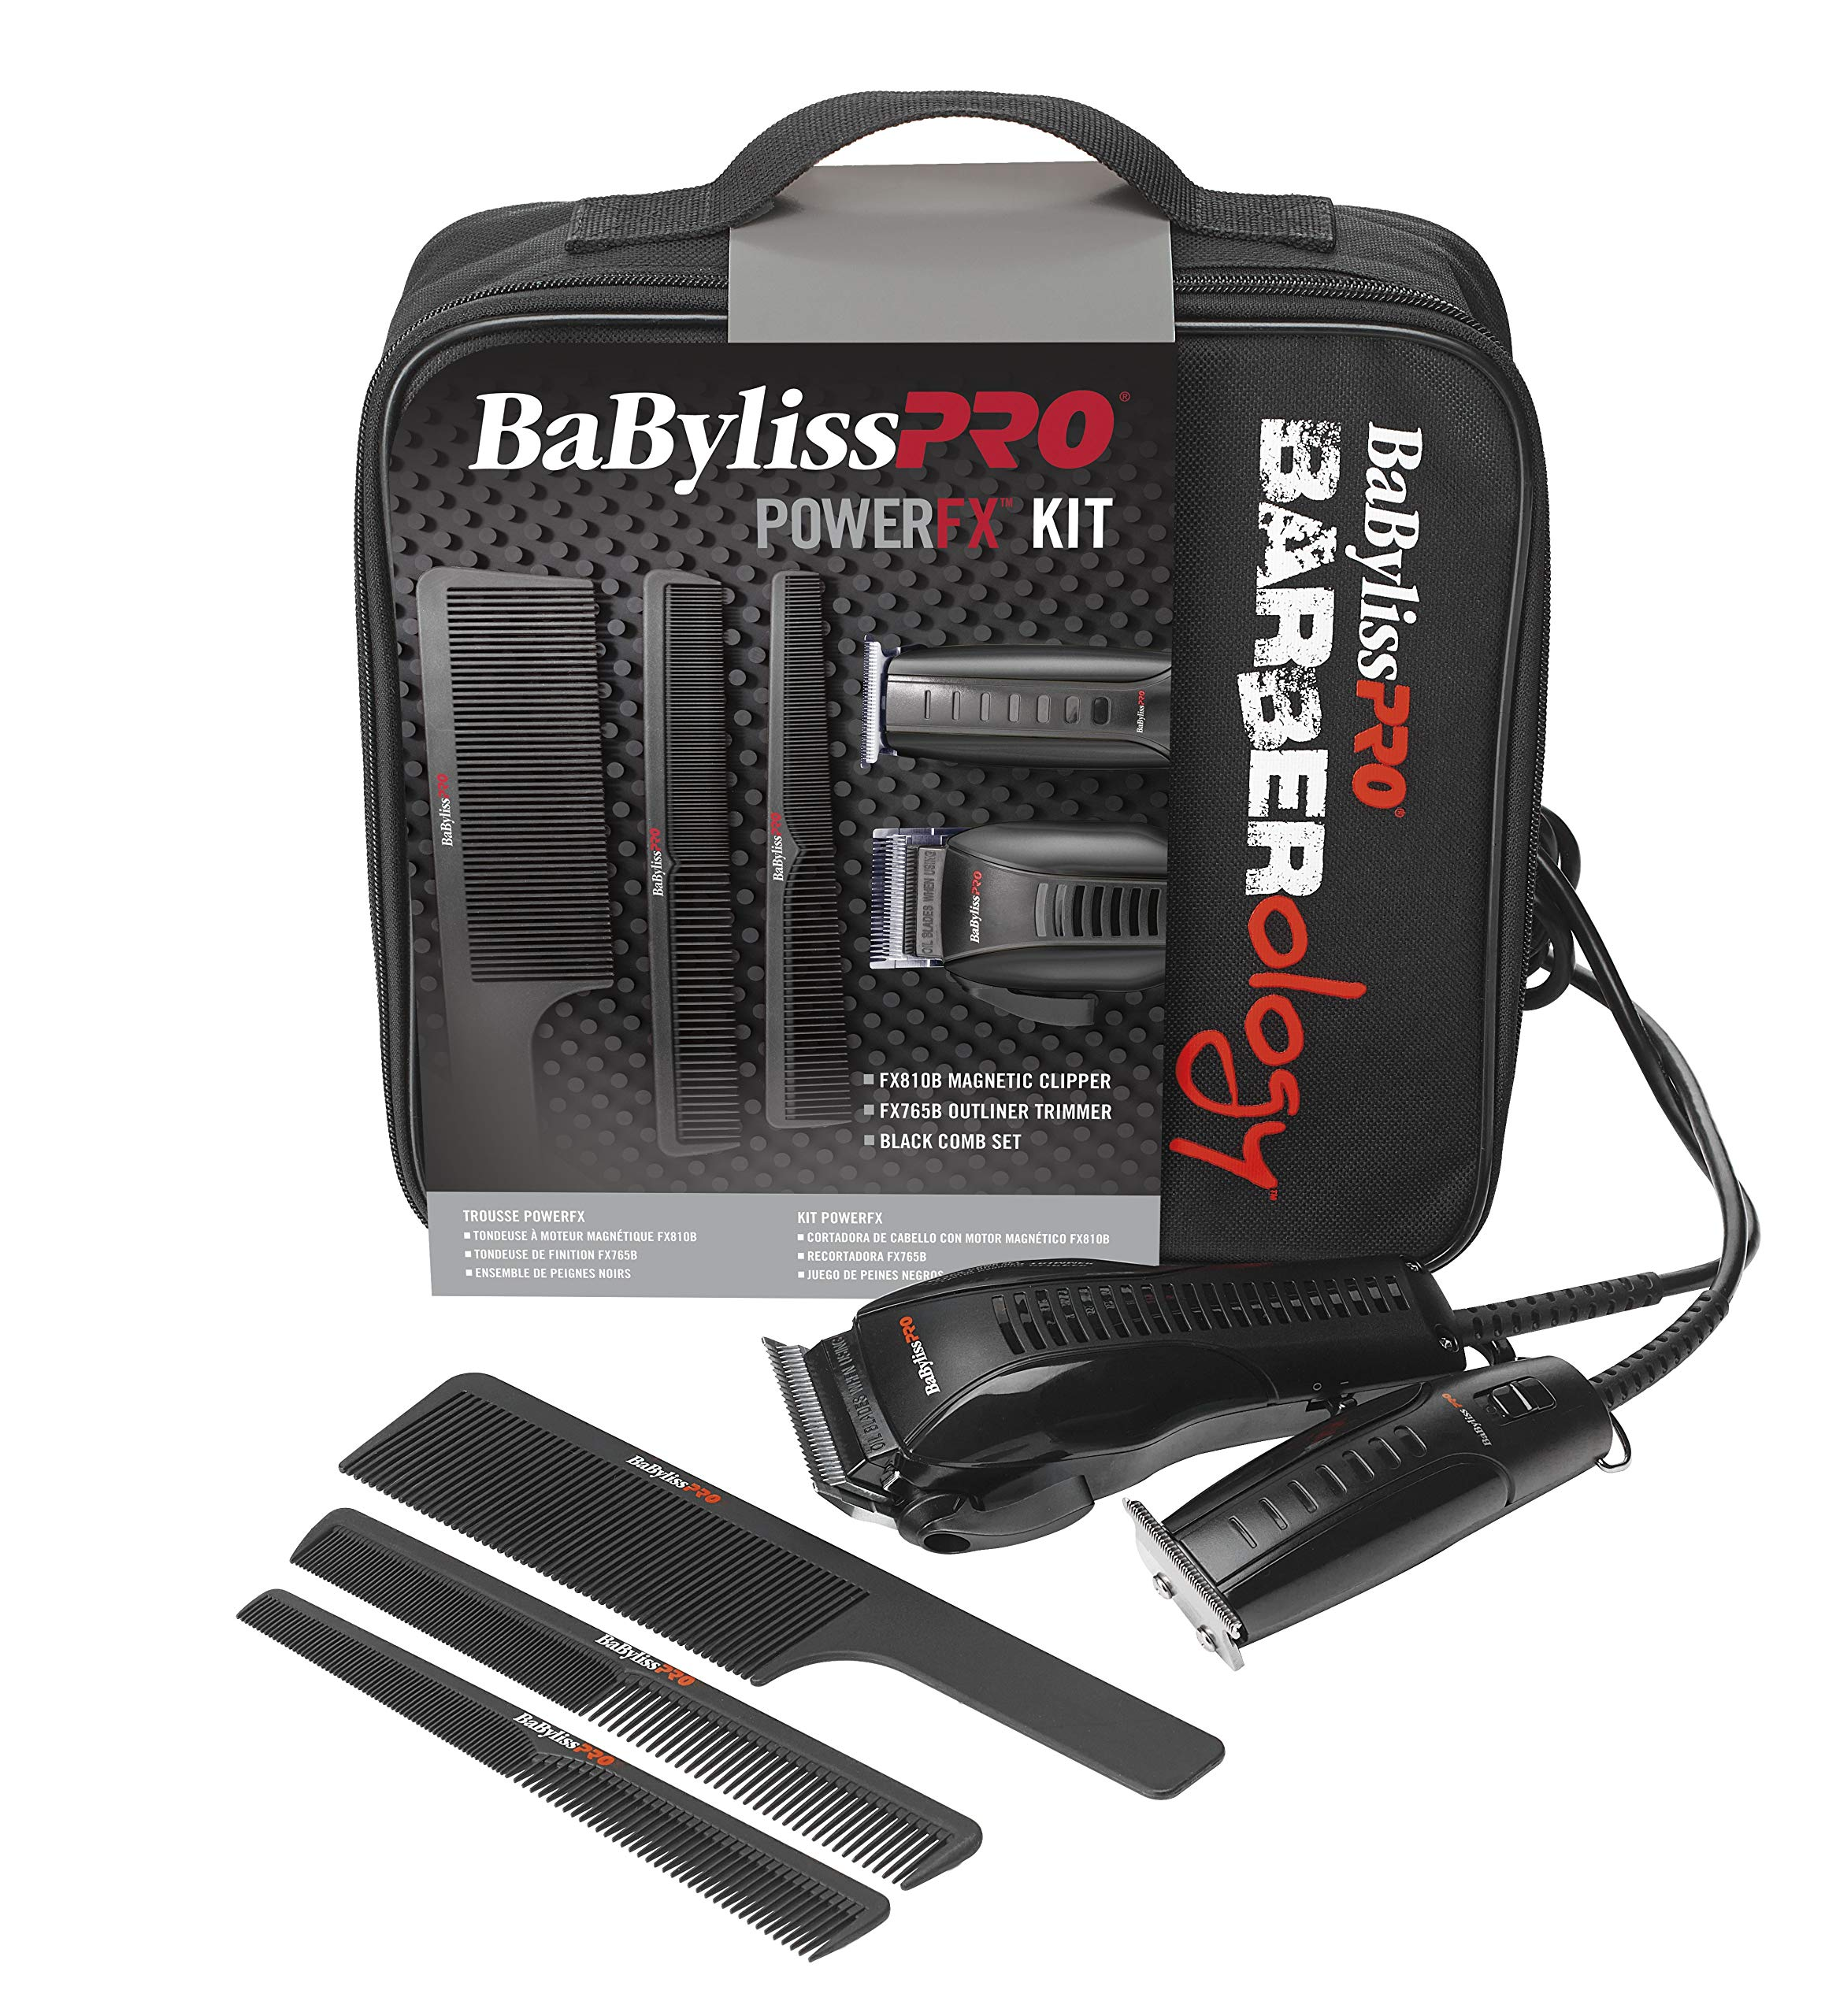 - 91GpJKEVu8L - BaBylissPRO Powerfx Kit Fx810b and Fx765b Combo